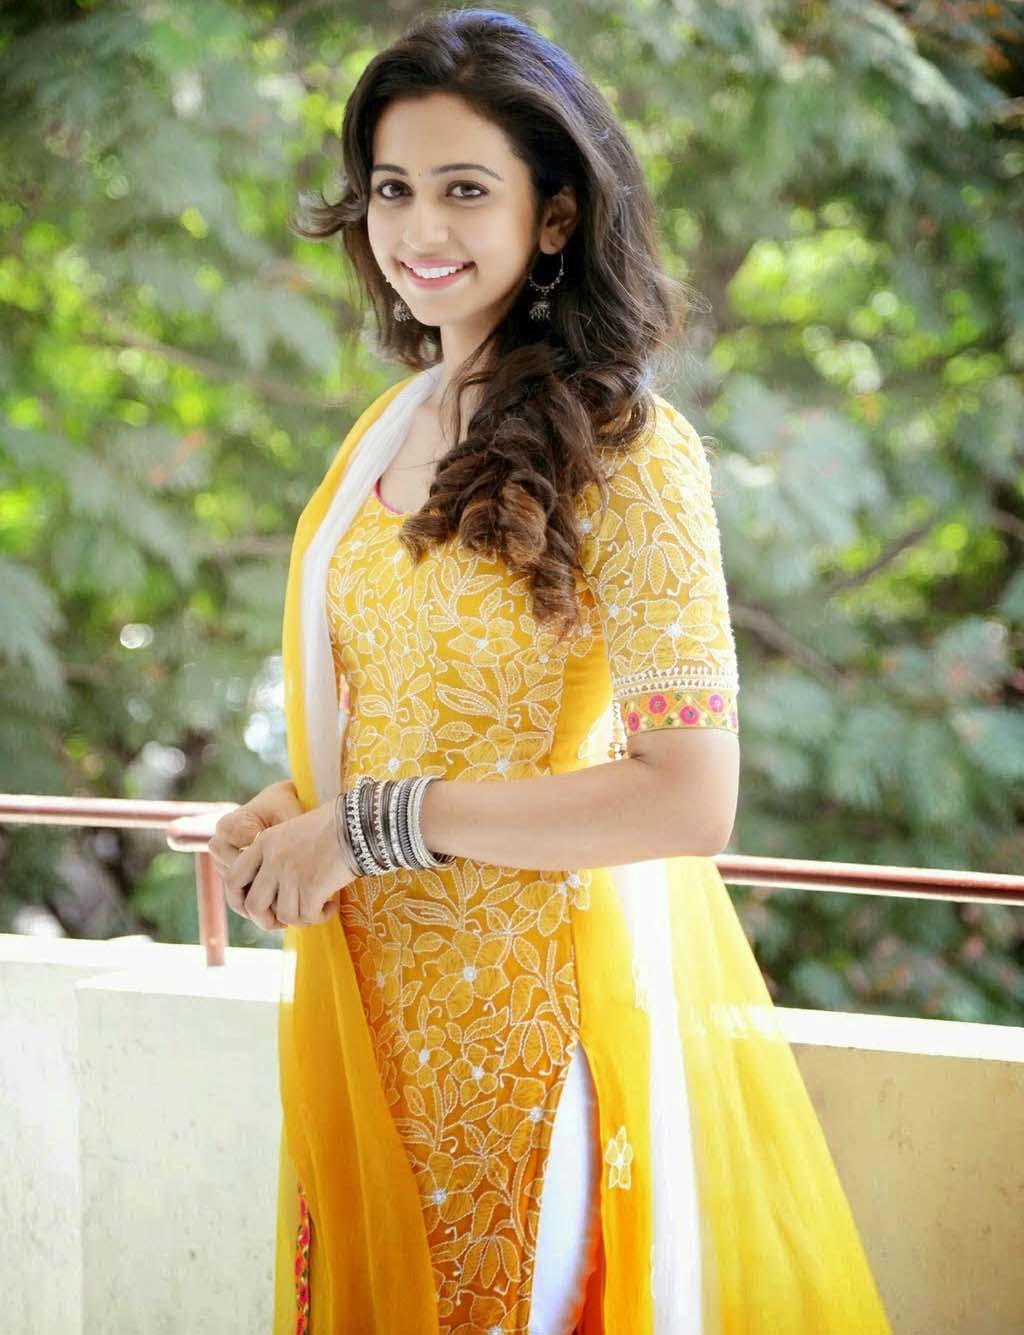 Desktop Charming Rakul Preet Singh Yellow Dress Image Photo Free Download